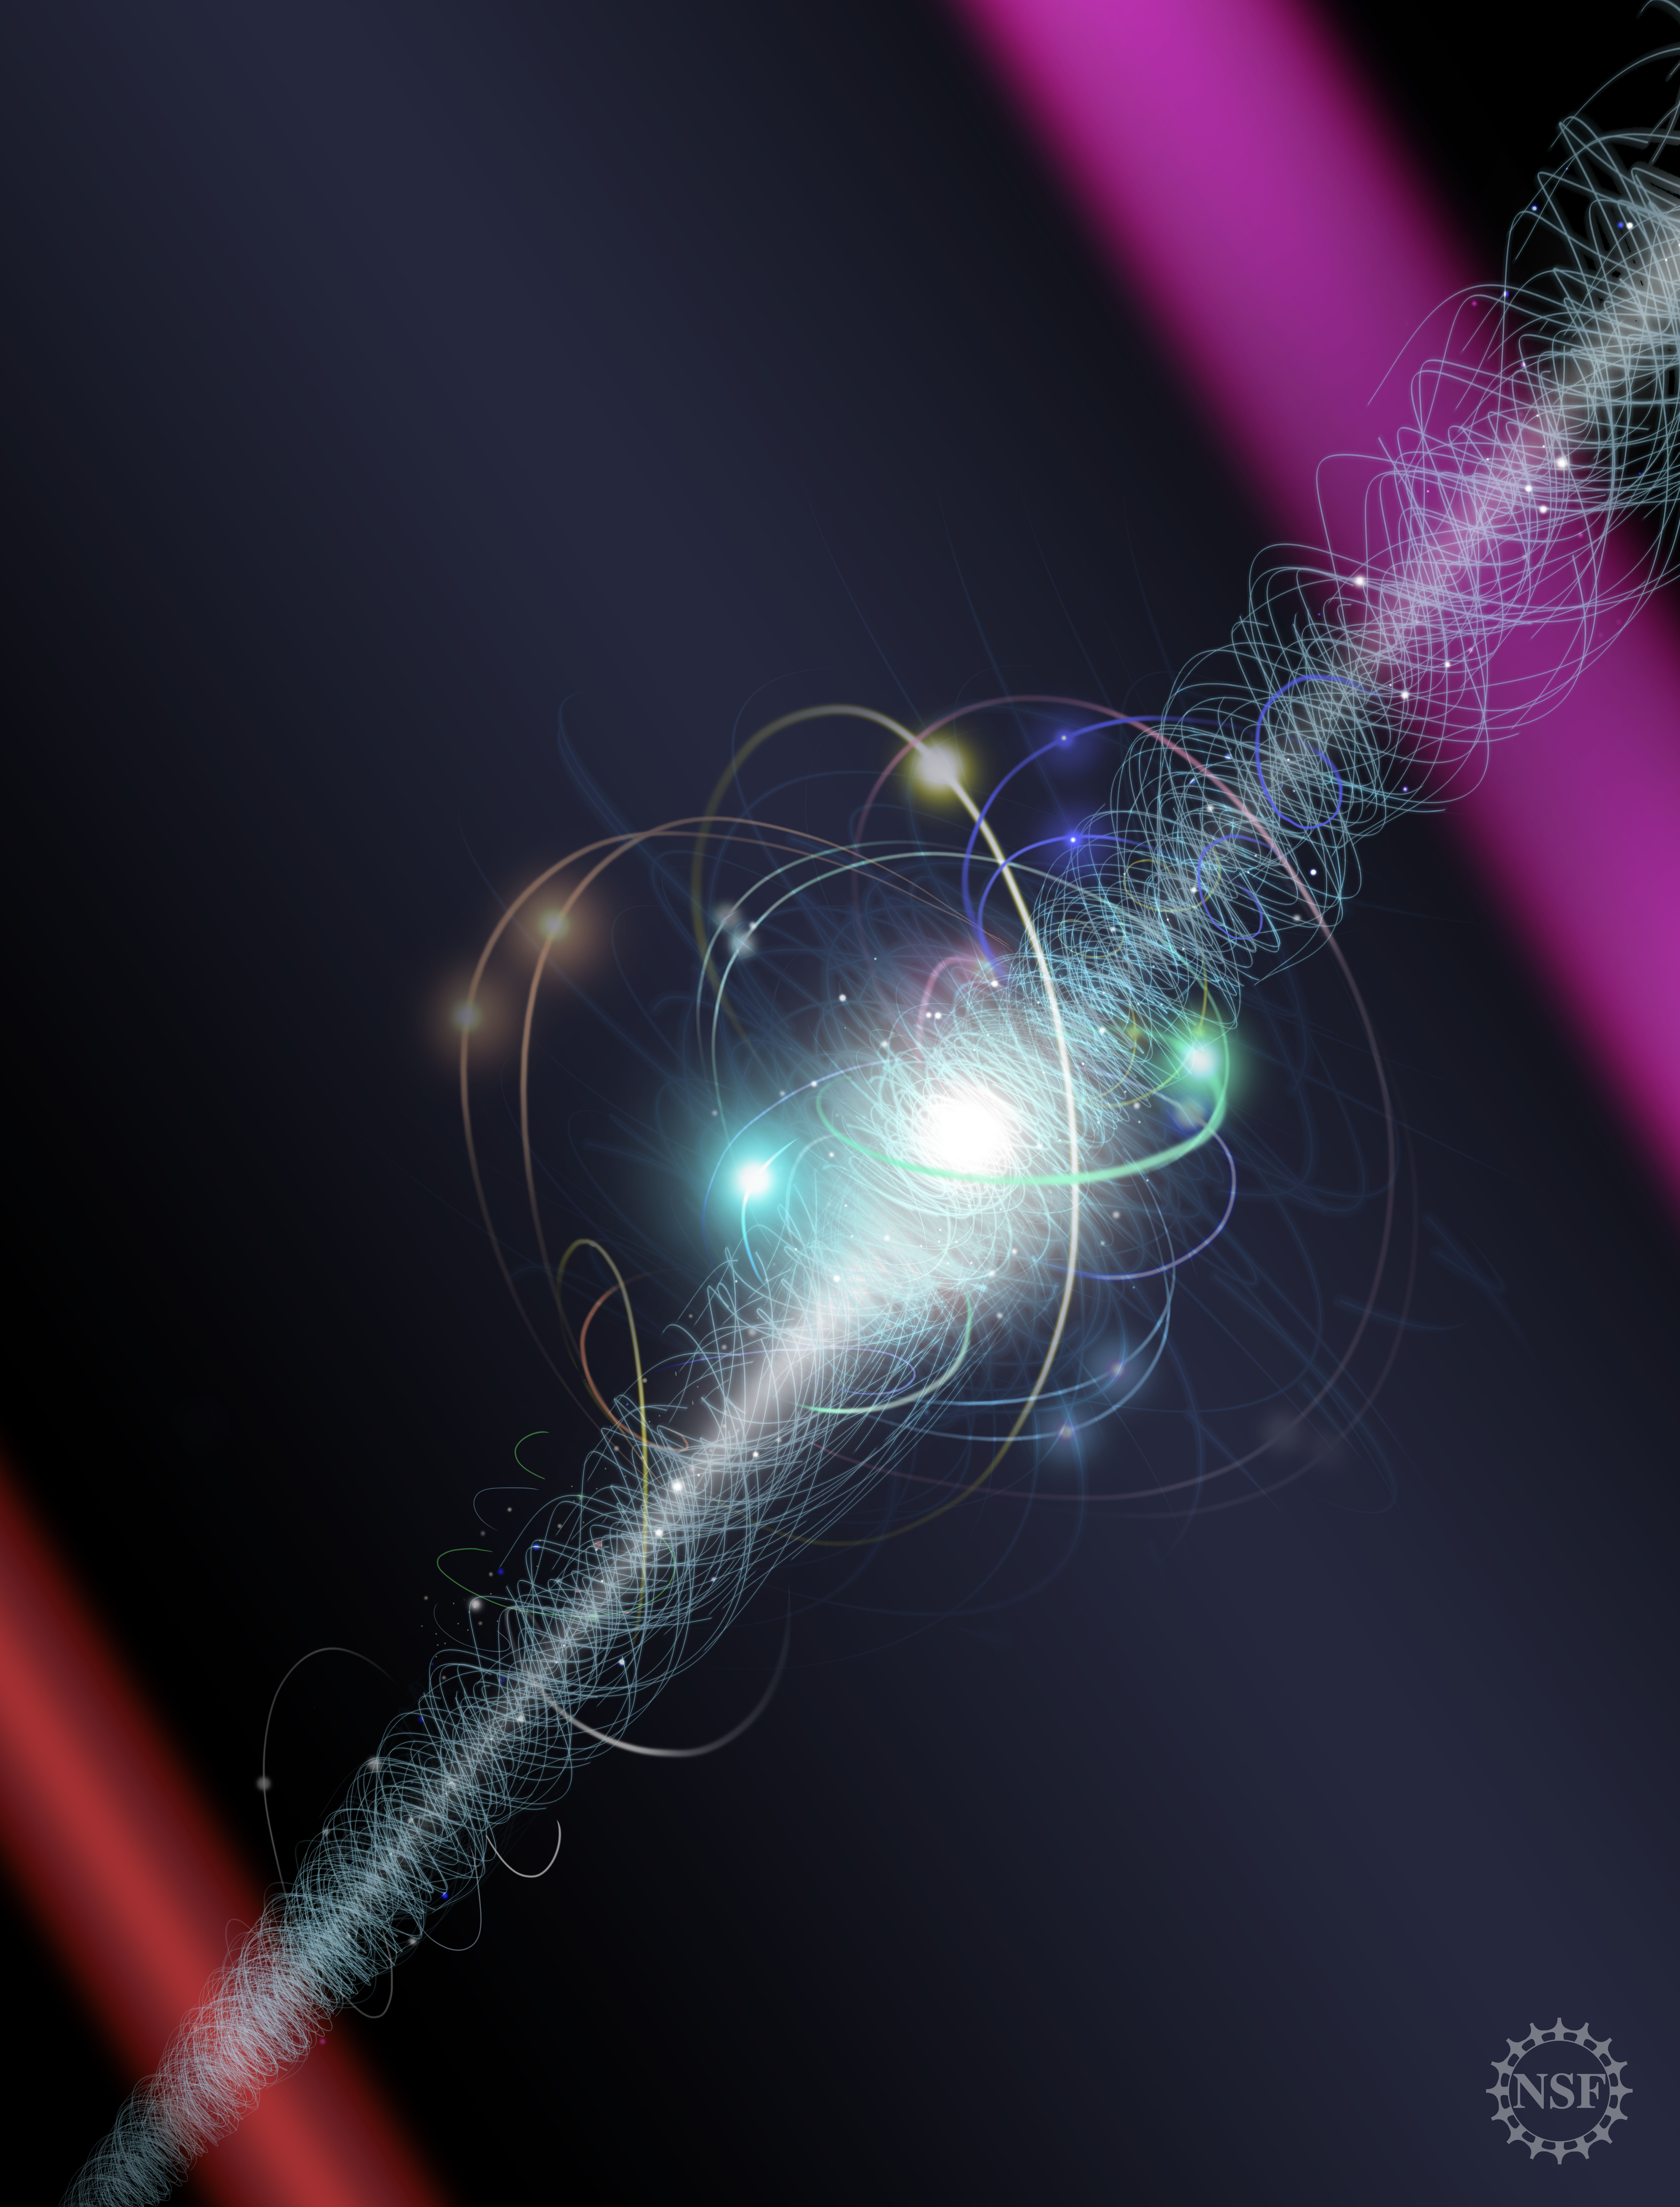 Extremely close look at electron advances frontiers in particle physics